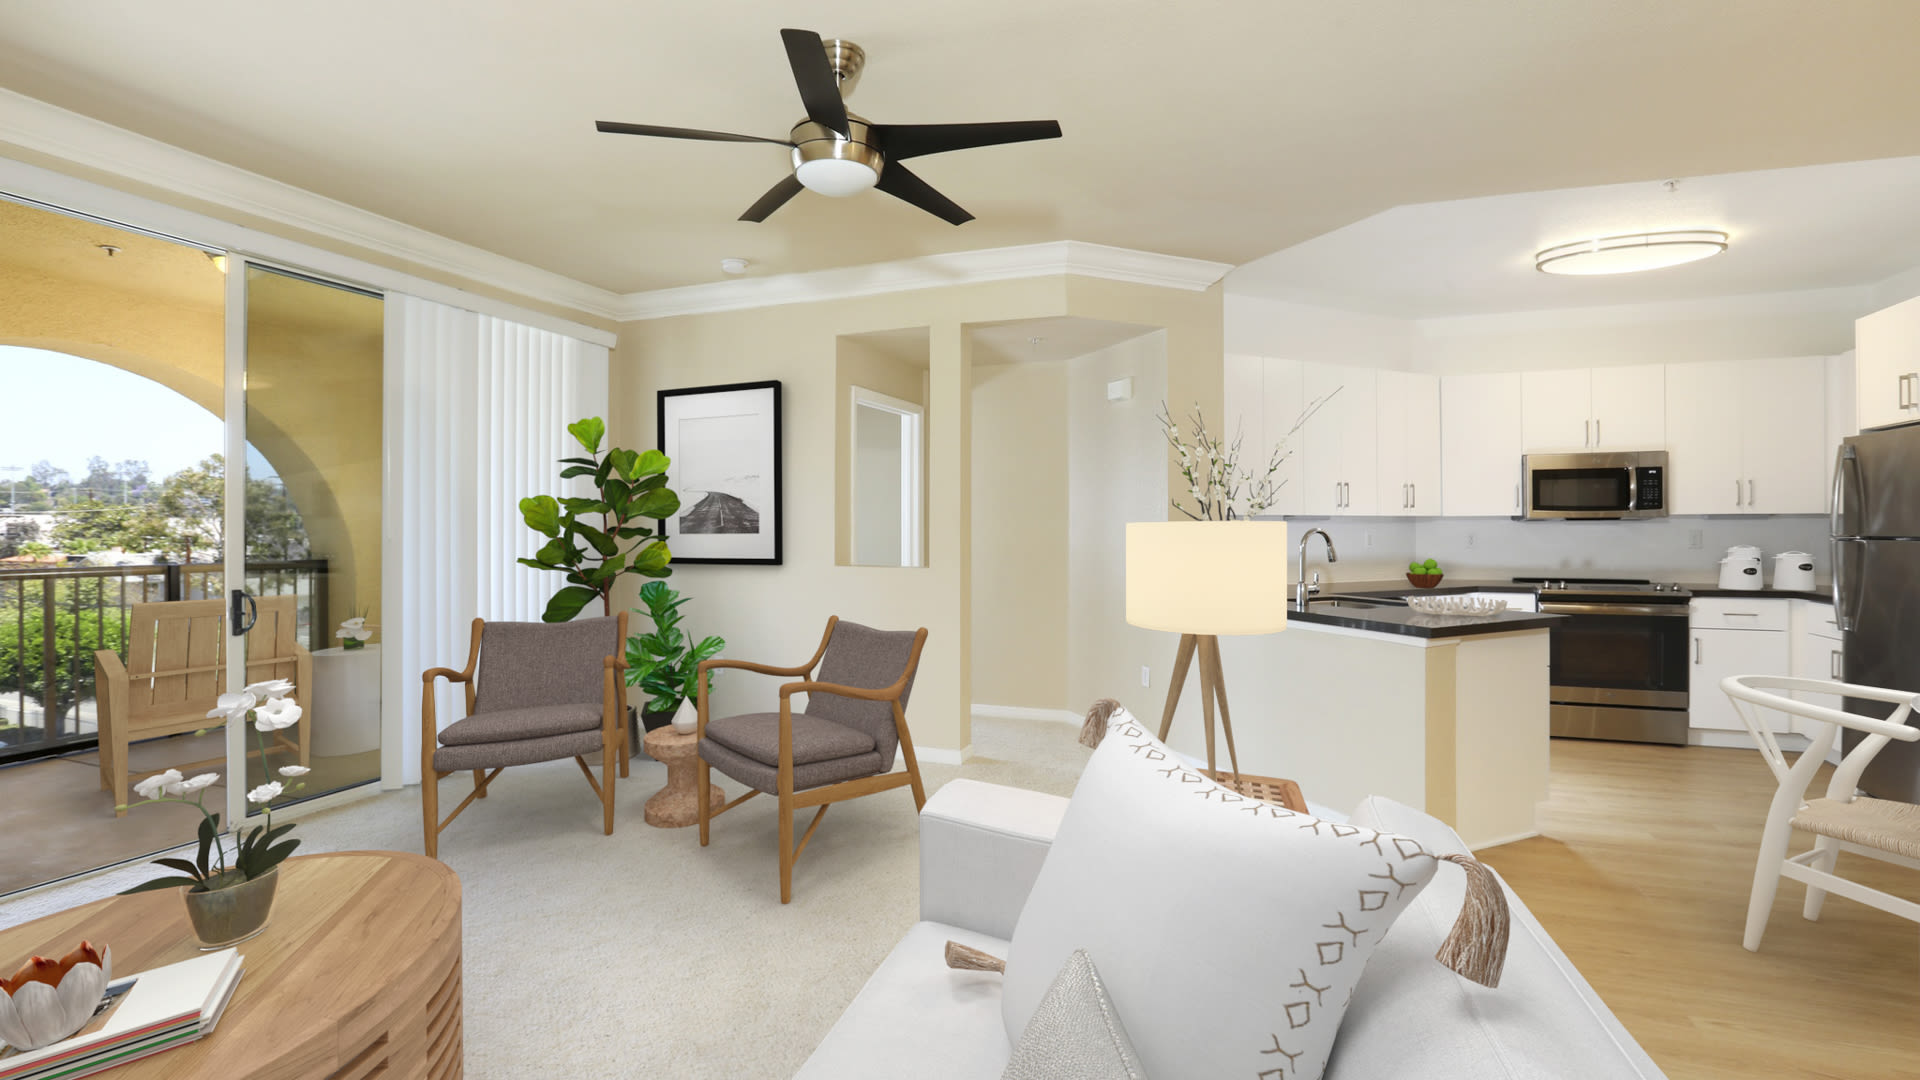 City Pointe Apartments - Kitchen and Living Room with Balcony